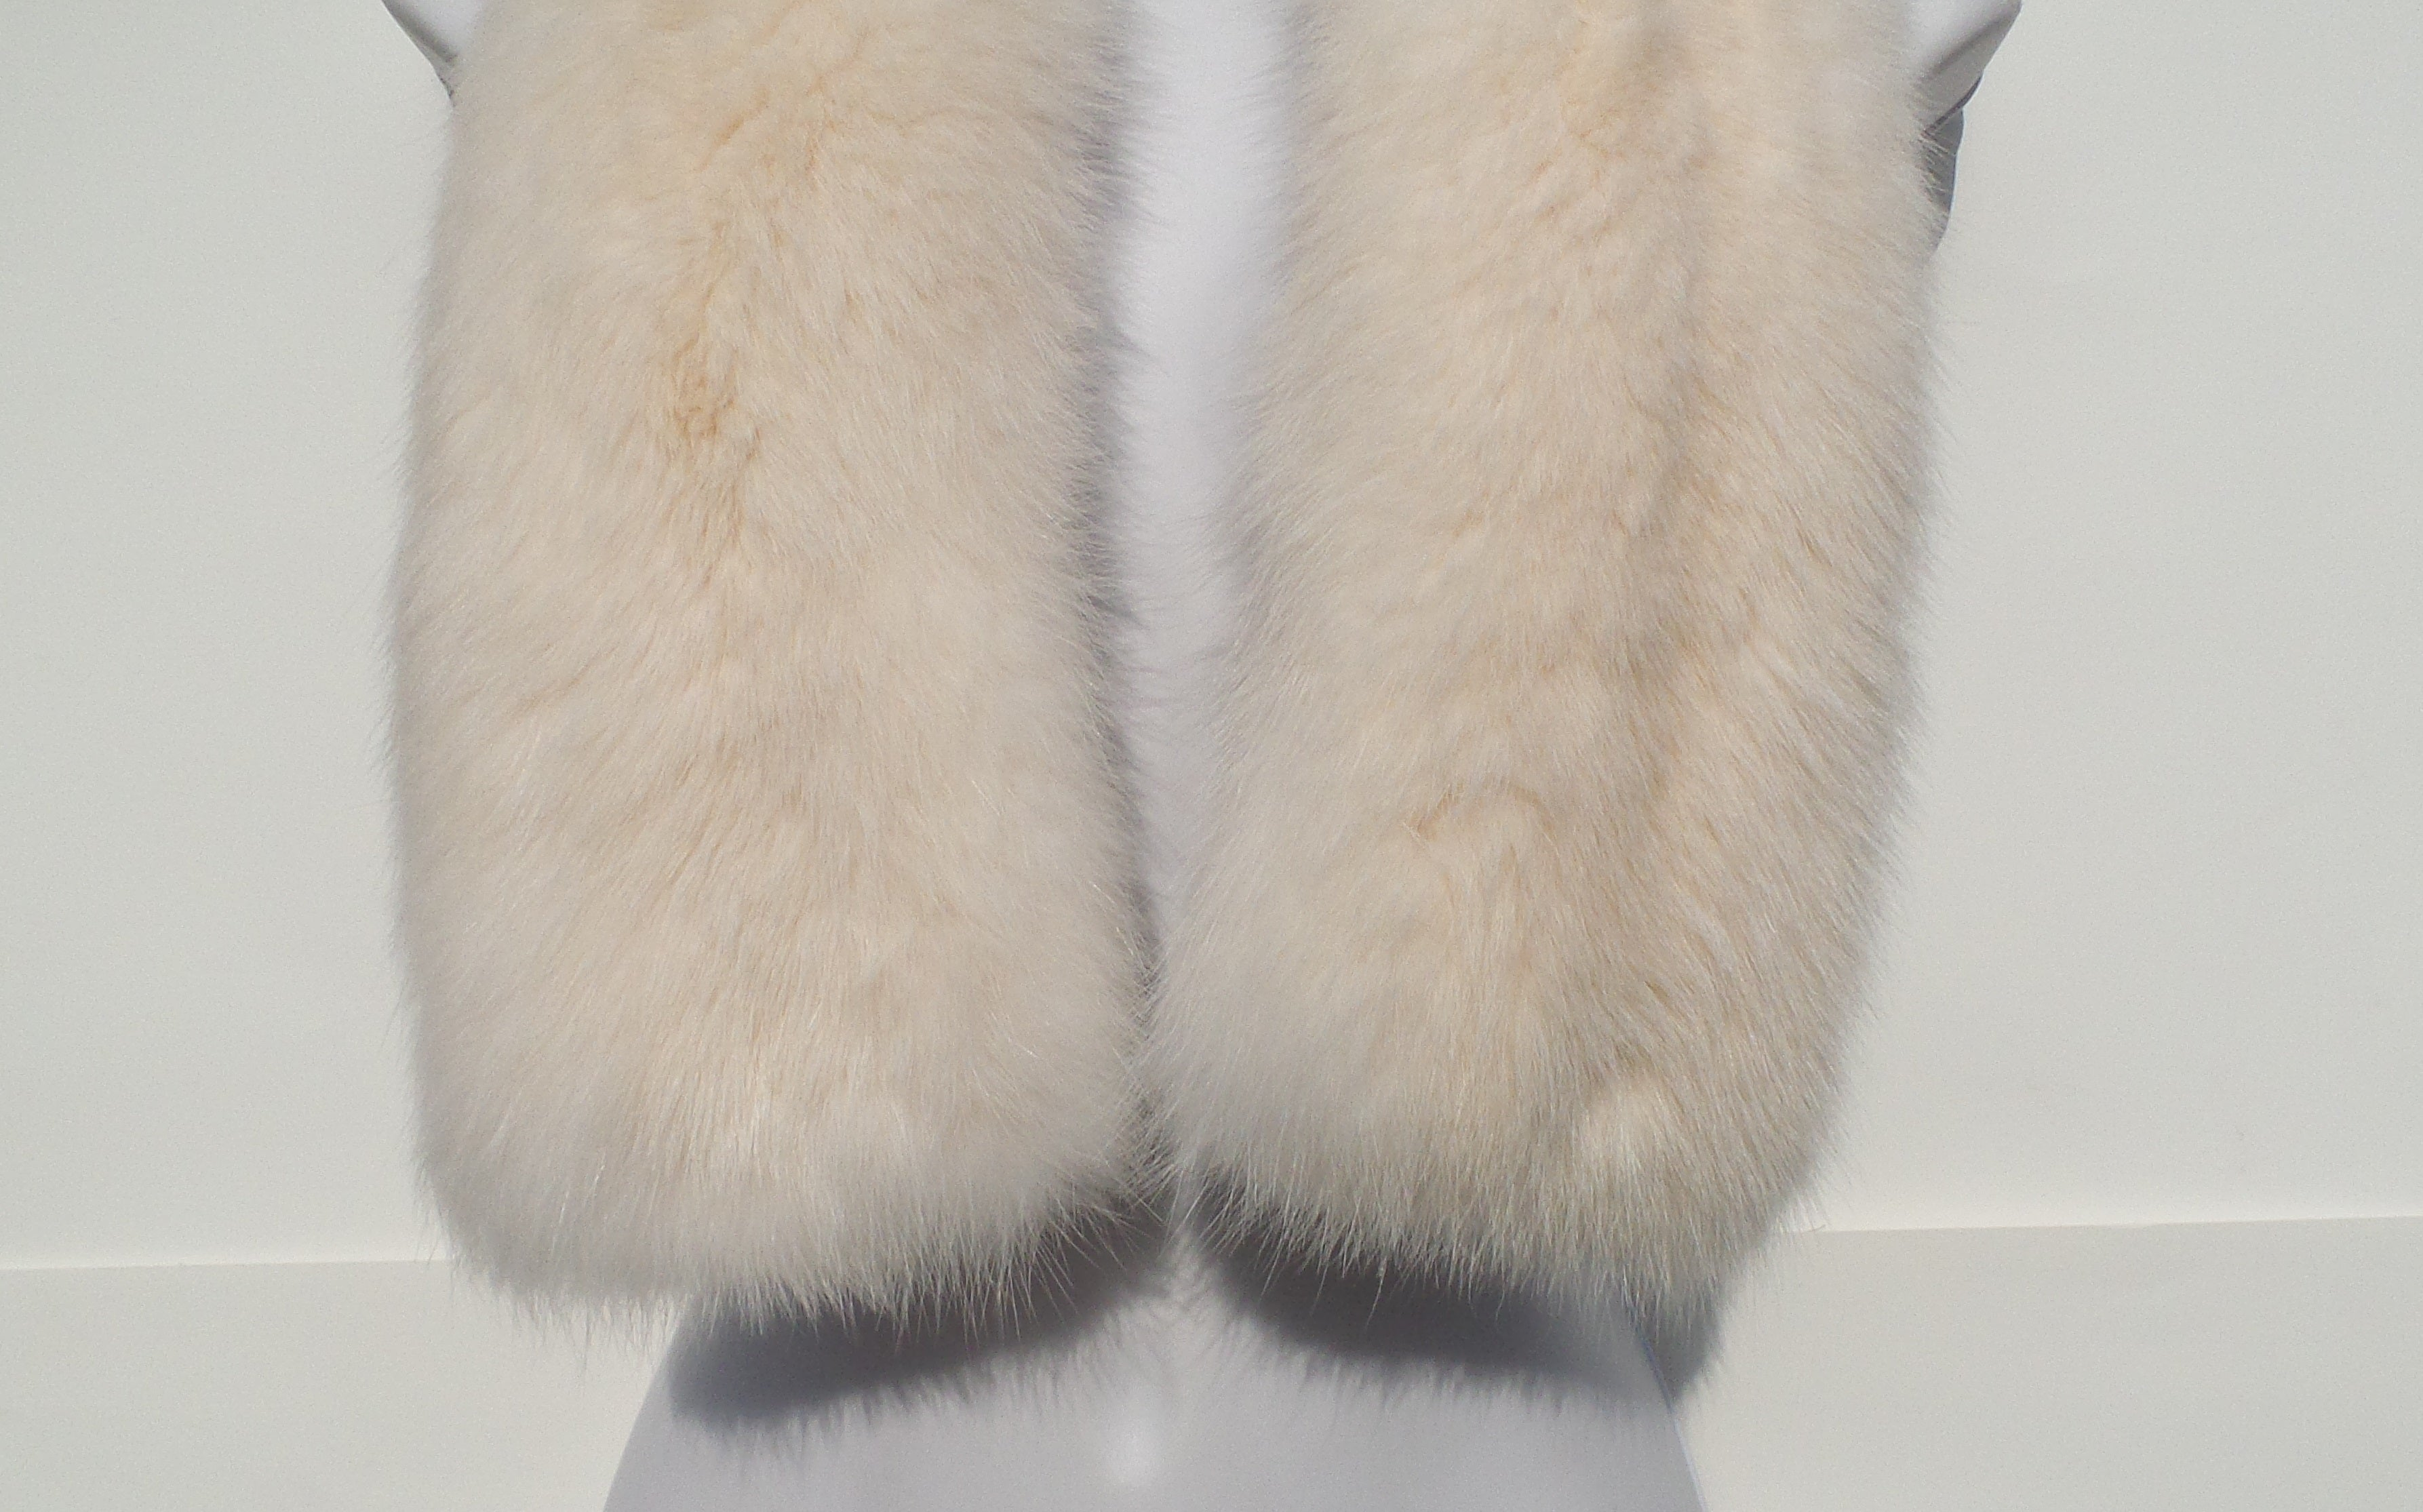 'Sold' LORO PIANA Ivory Creme White Sable Fur Cashmere Lined Pull Through Scarf Stole